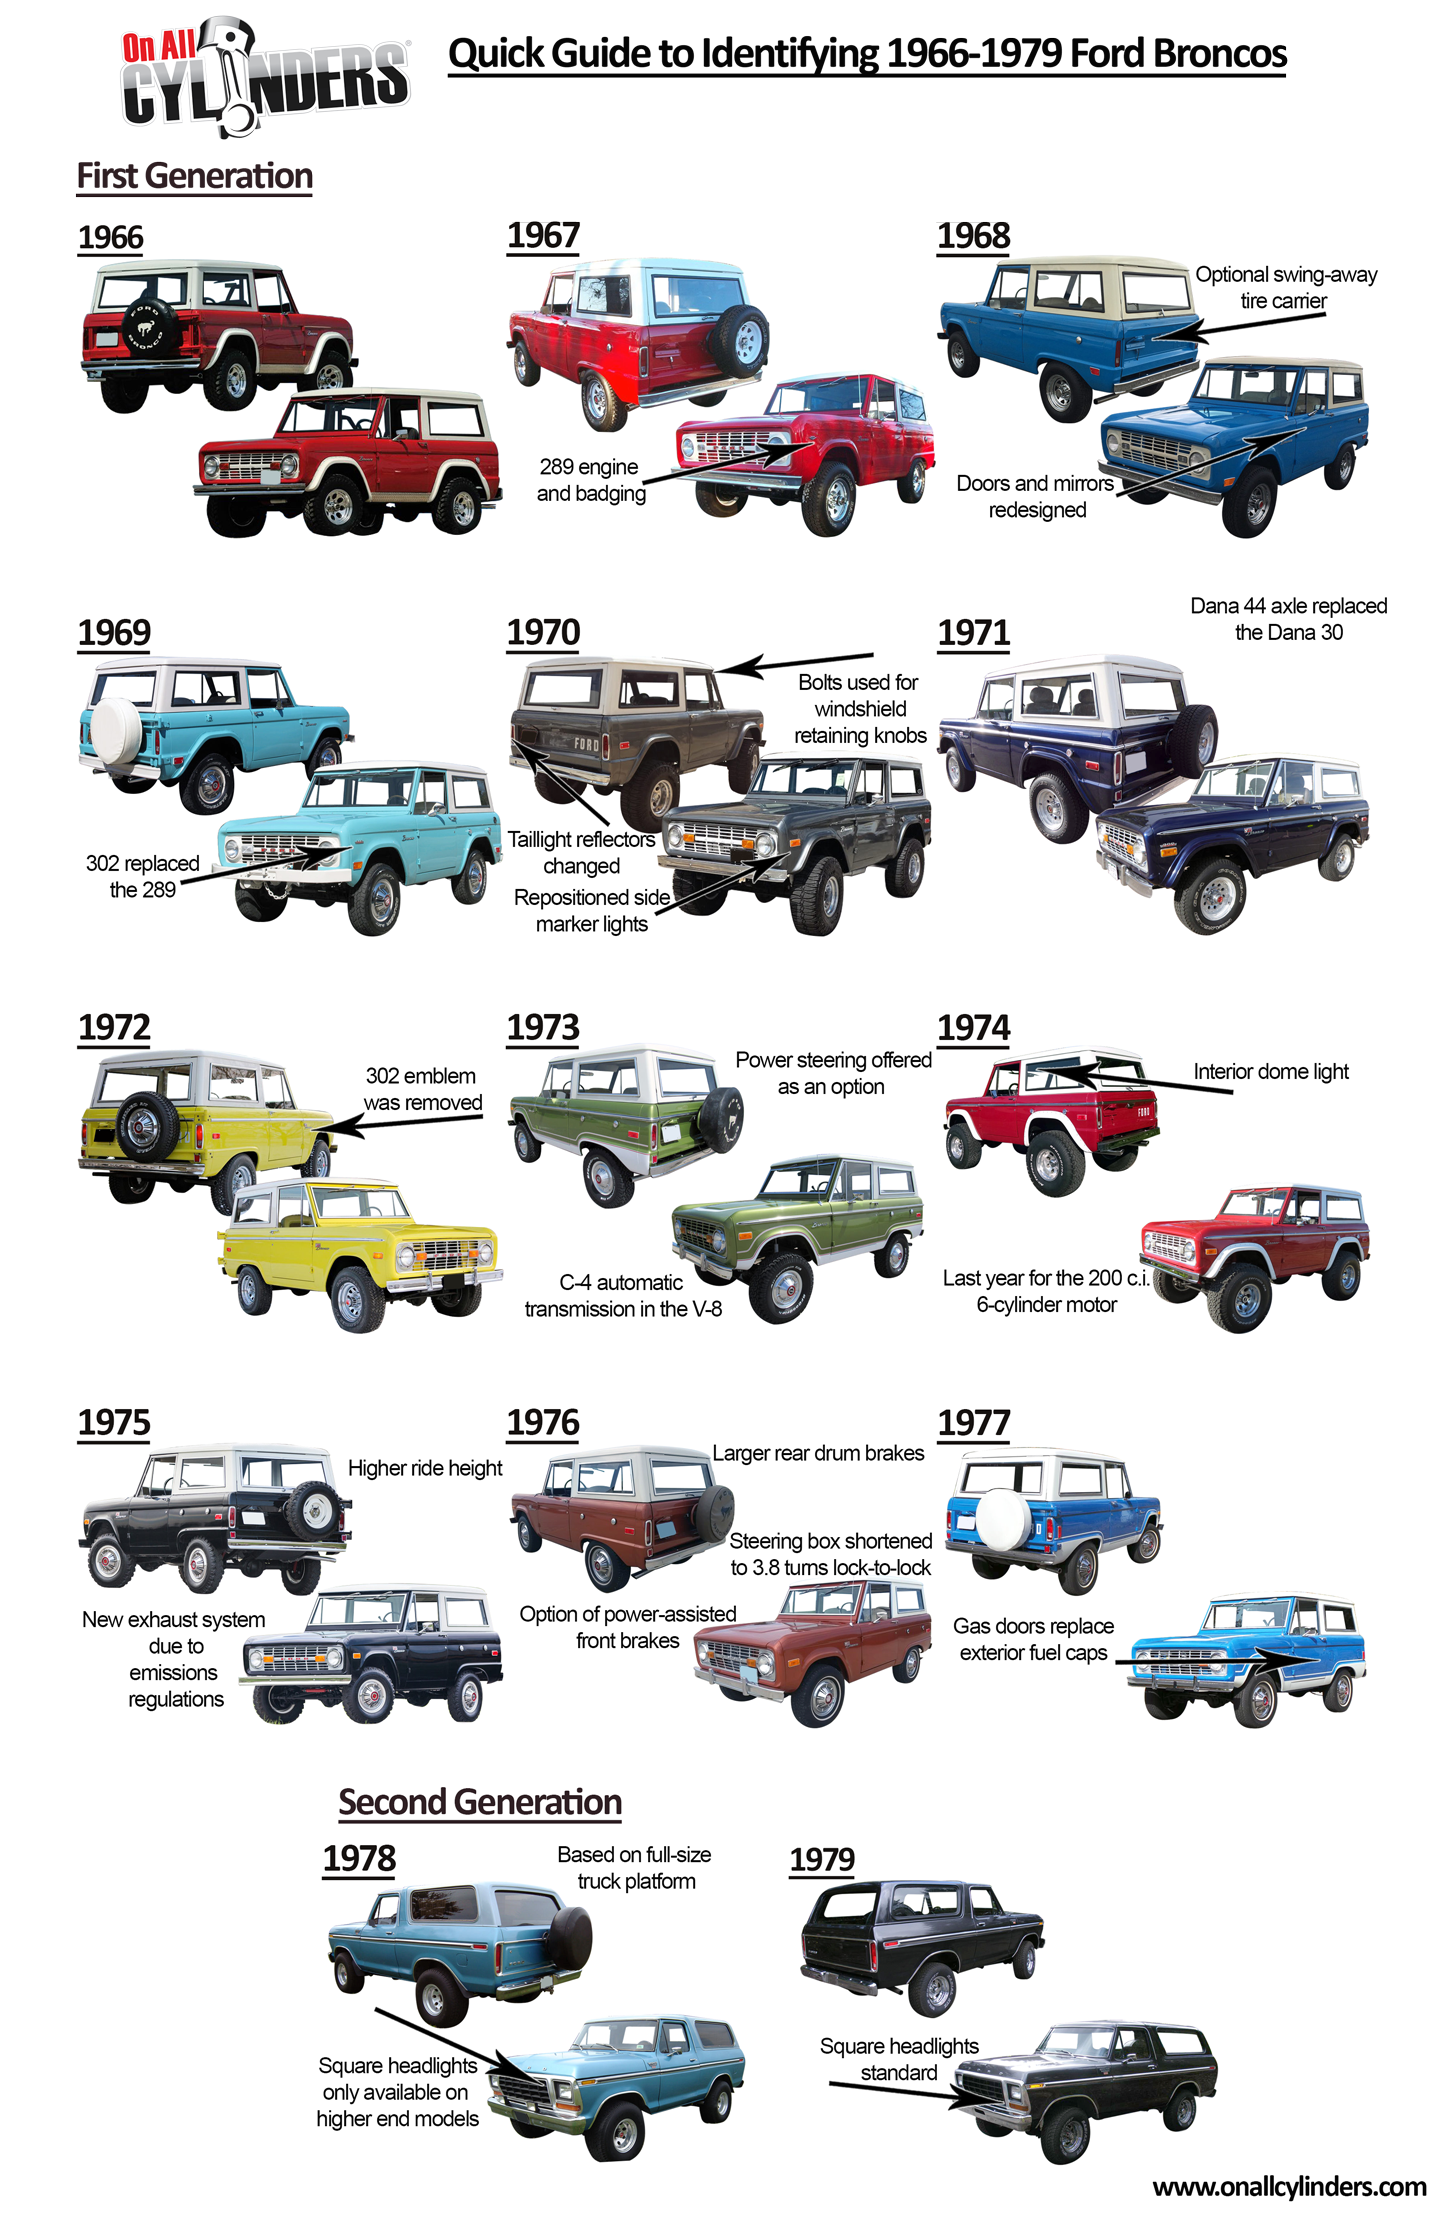 Ford Bronco Discover Ride Guides A Quick Guide To Identifying 1966 1979 Ford Broncos Onallcylinders Ford Bronco Ri In 2020 Ford Bronco 1979 Ford Bronco Bronco Truck